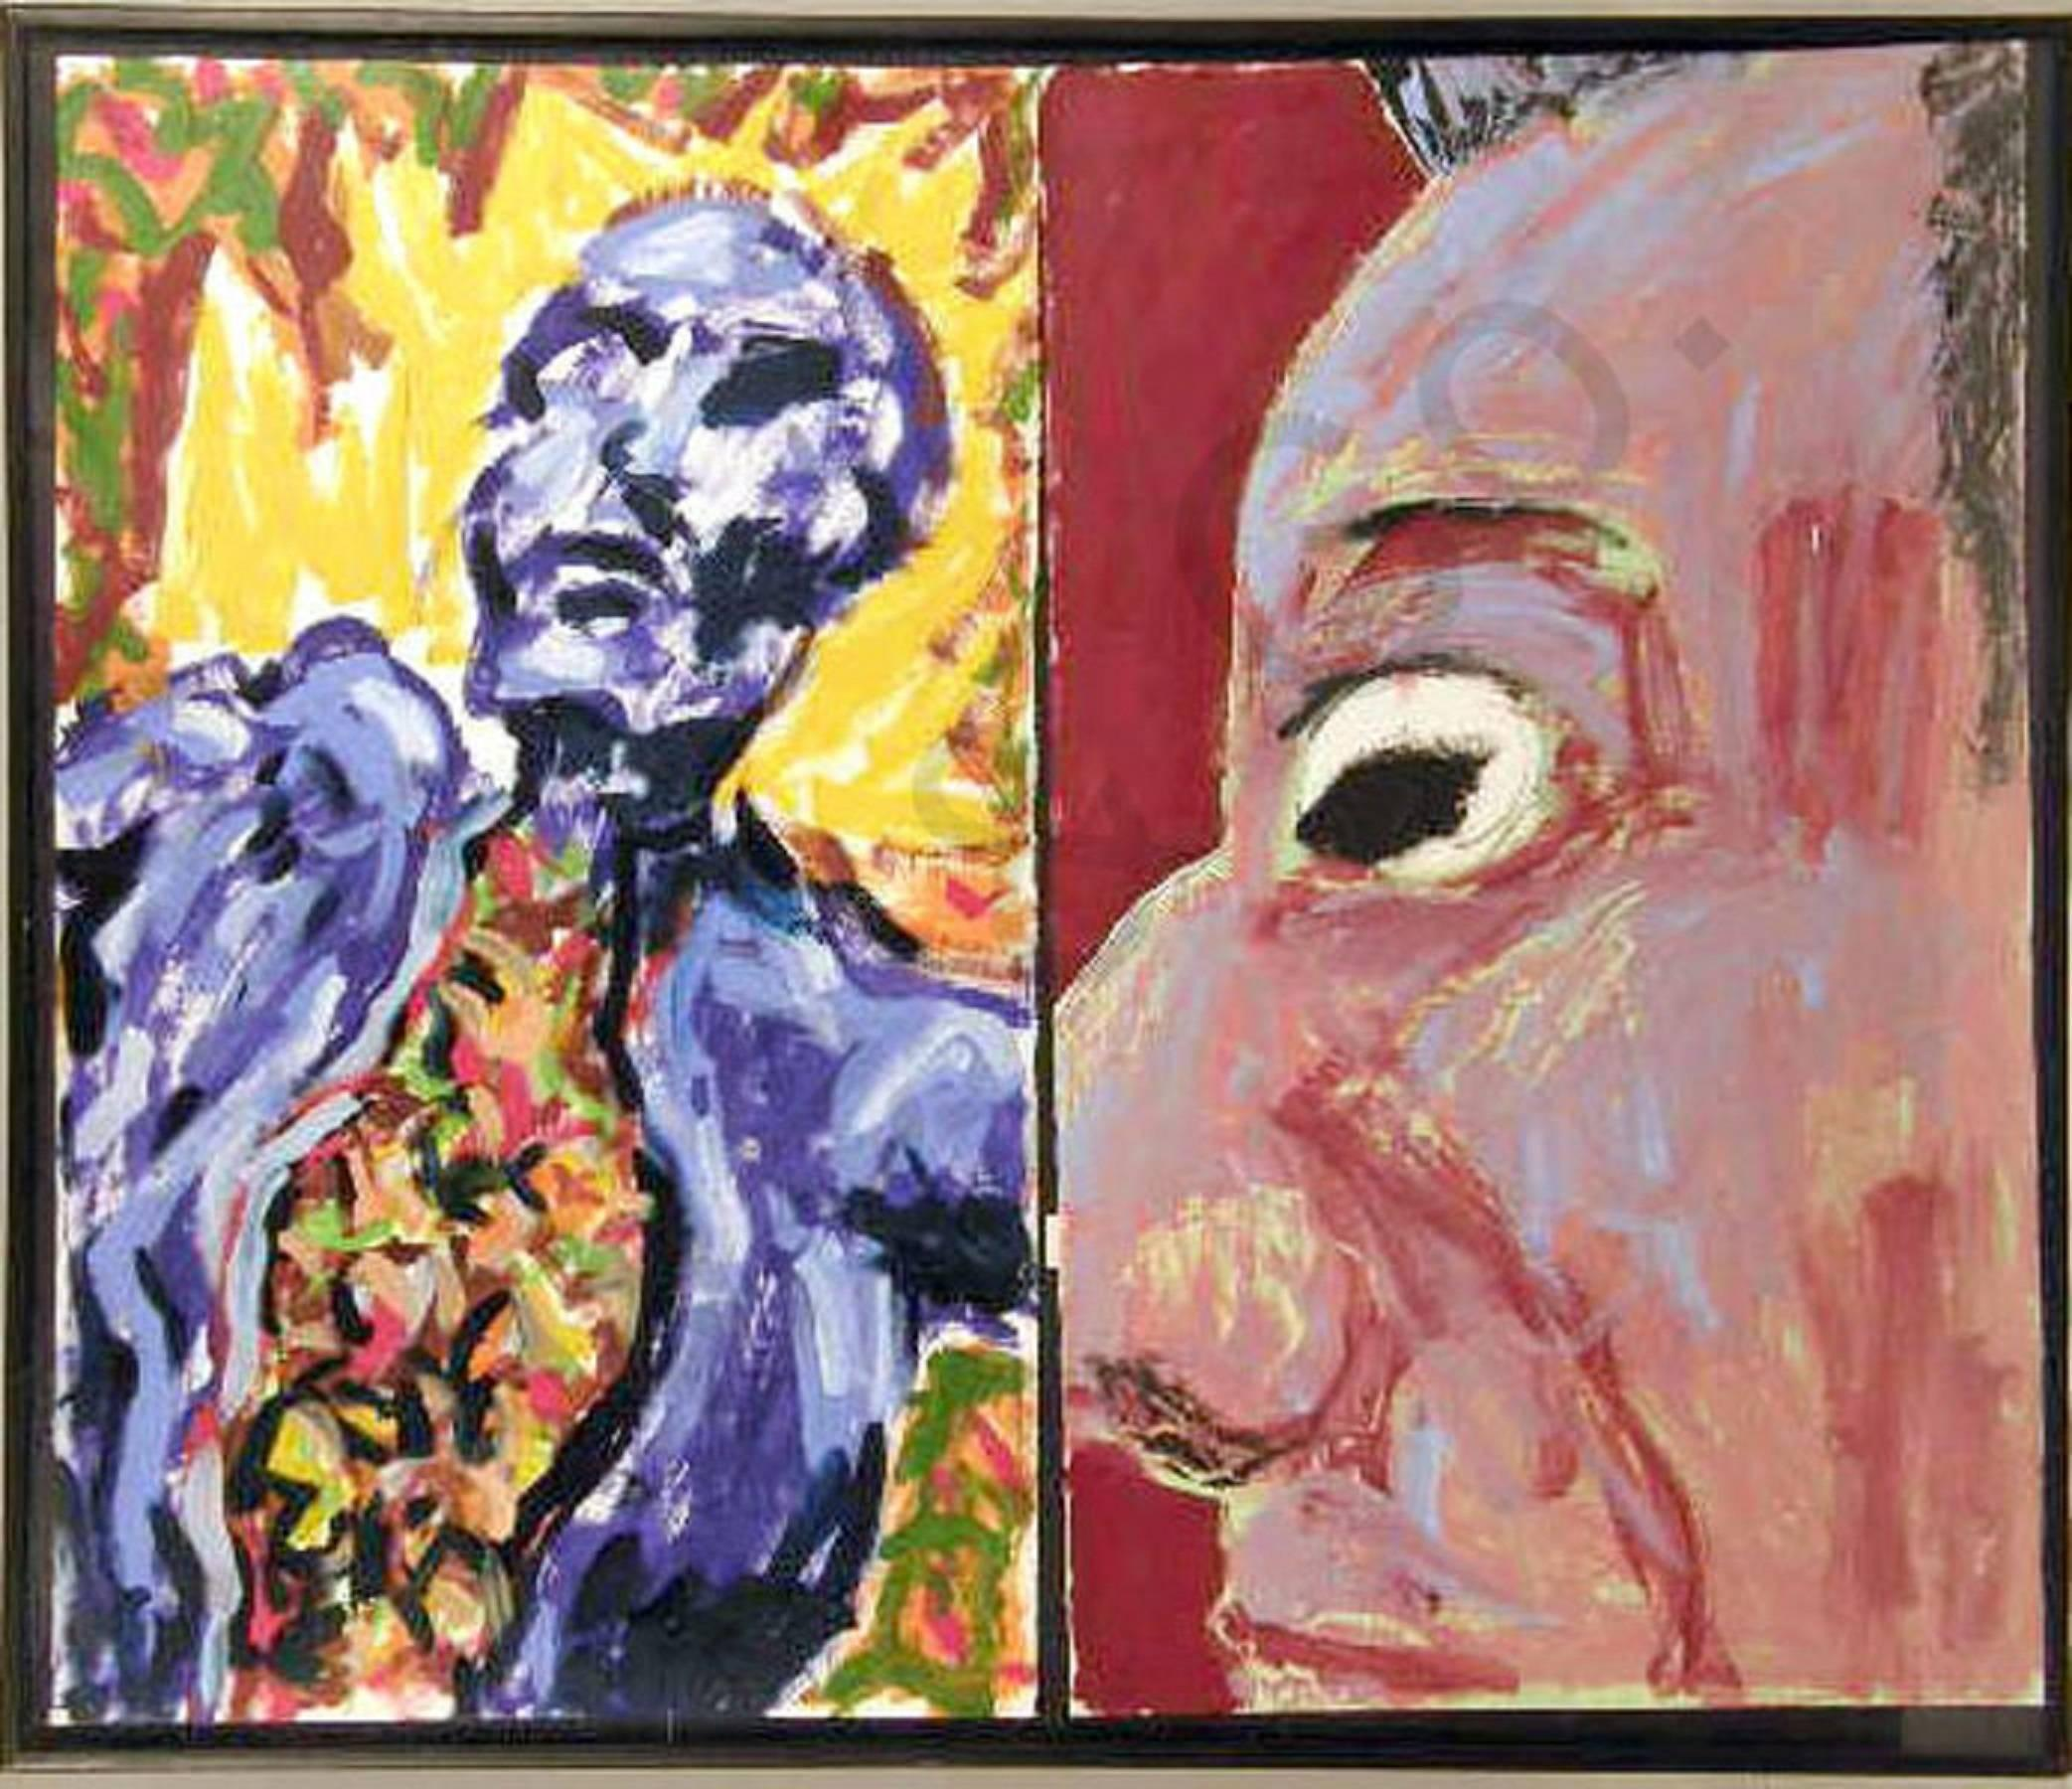 UNTITLED, 1981 DIPTYCH Neo Expressionist Figures